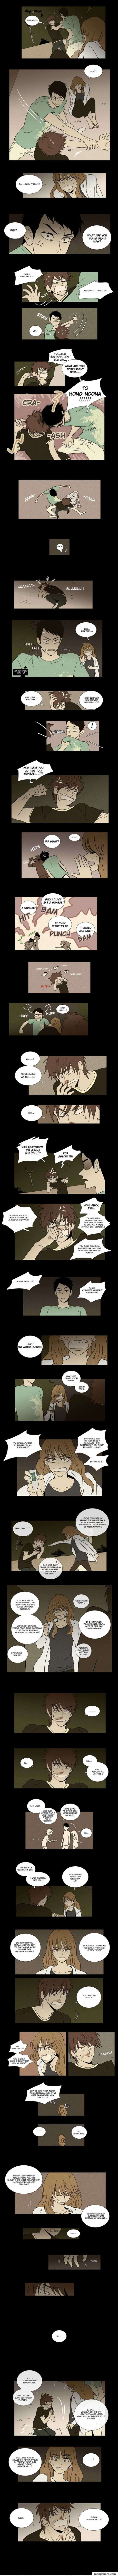 Cheese In The Trap 23 Page 1